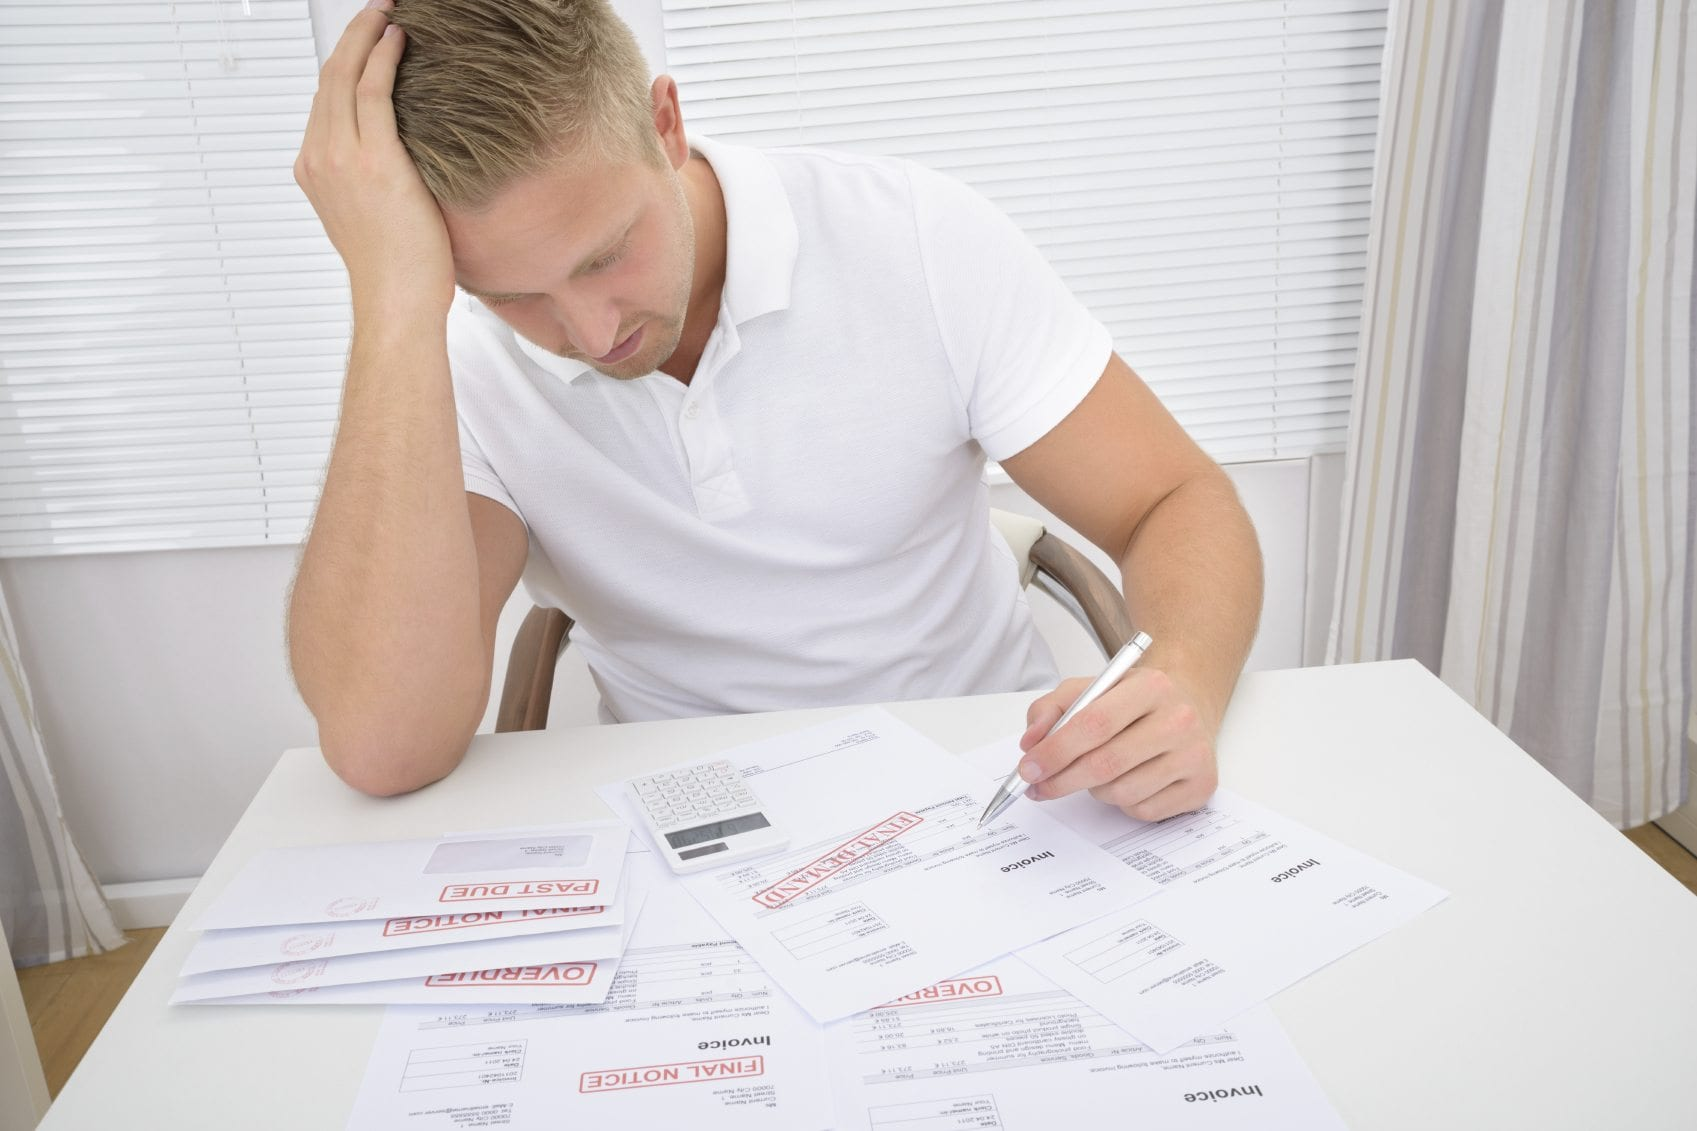 avoid declaring bankruptcy with options like a bad credit loan